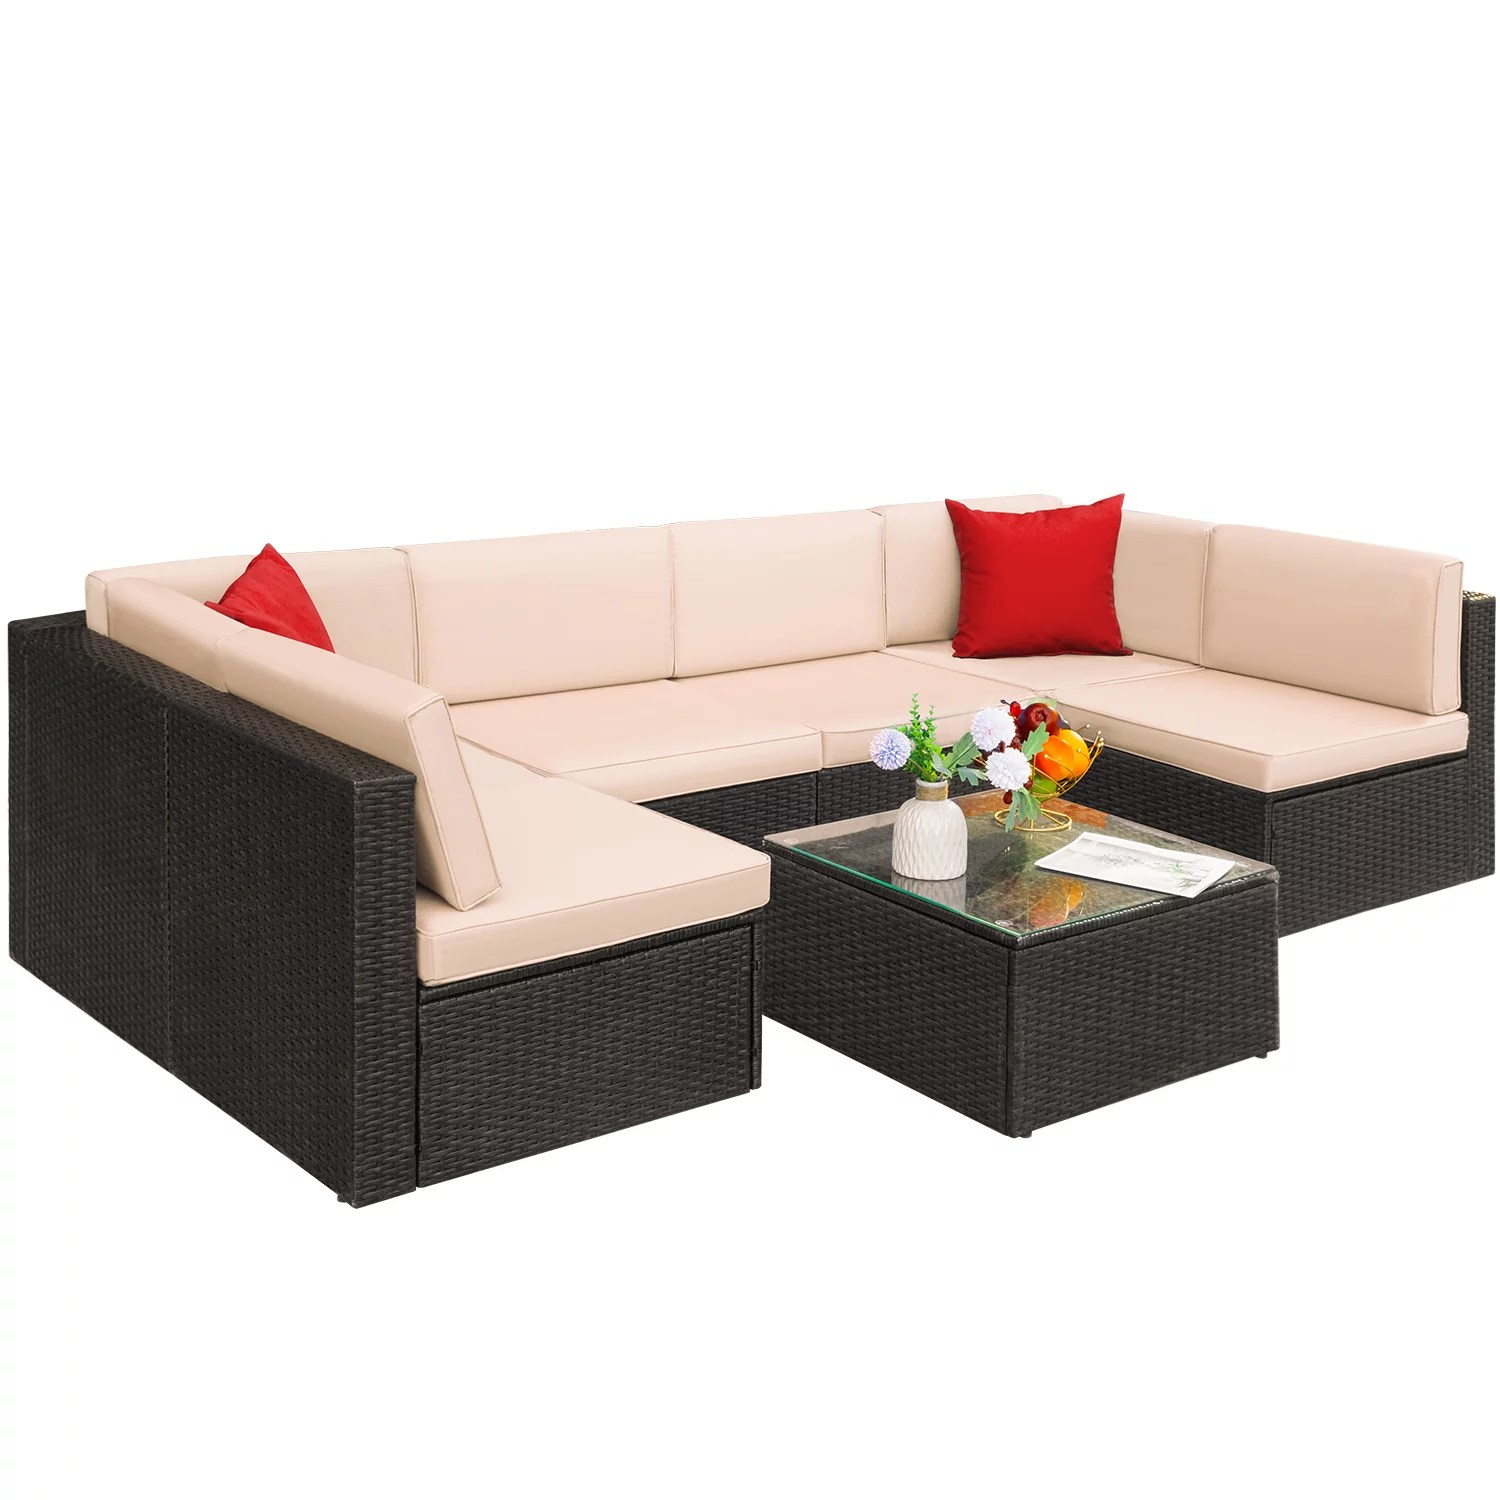 walnew 7 pieces patio conversation set outdoor sectional sofa set pe rattan sectional seating group with cushions and table beige